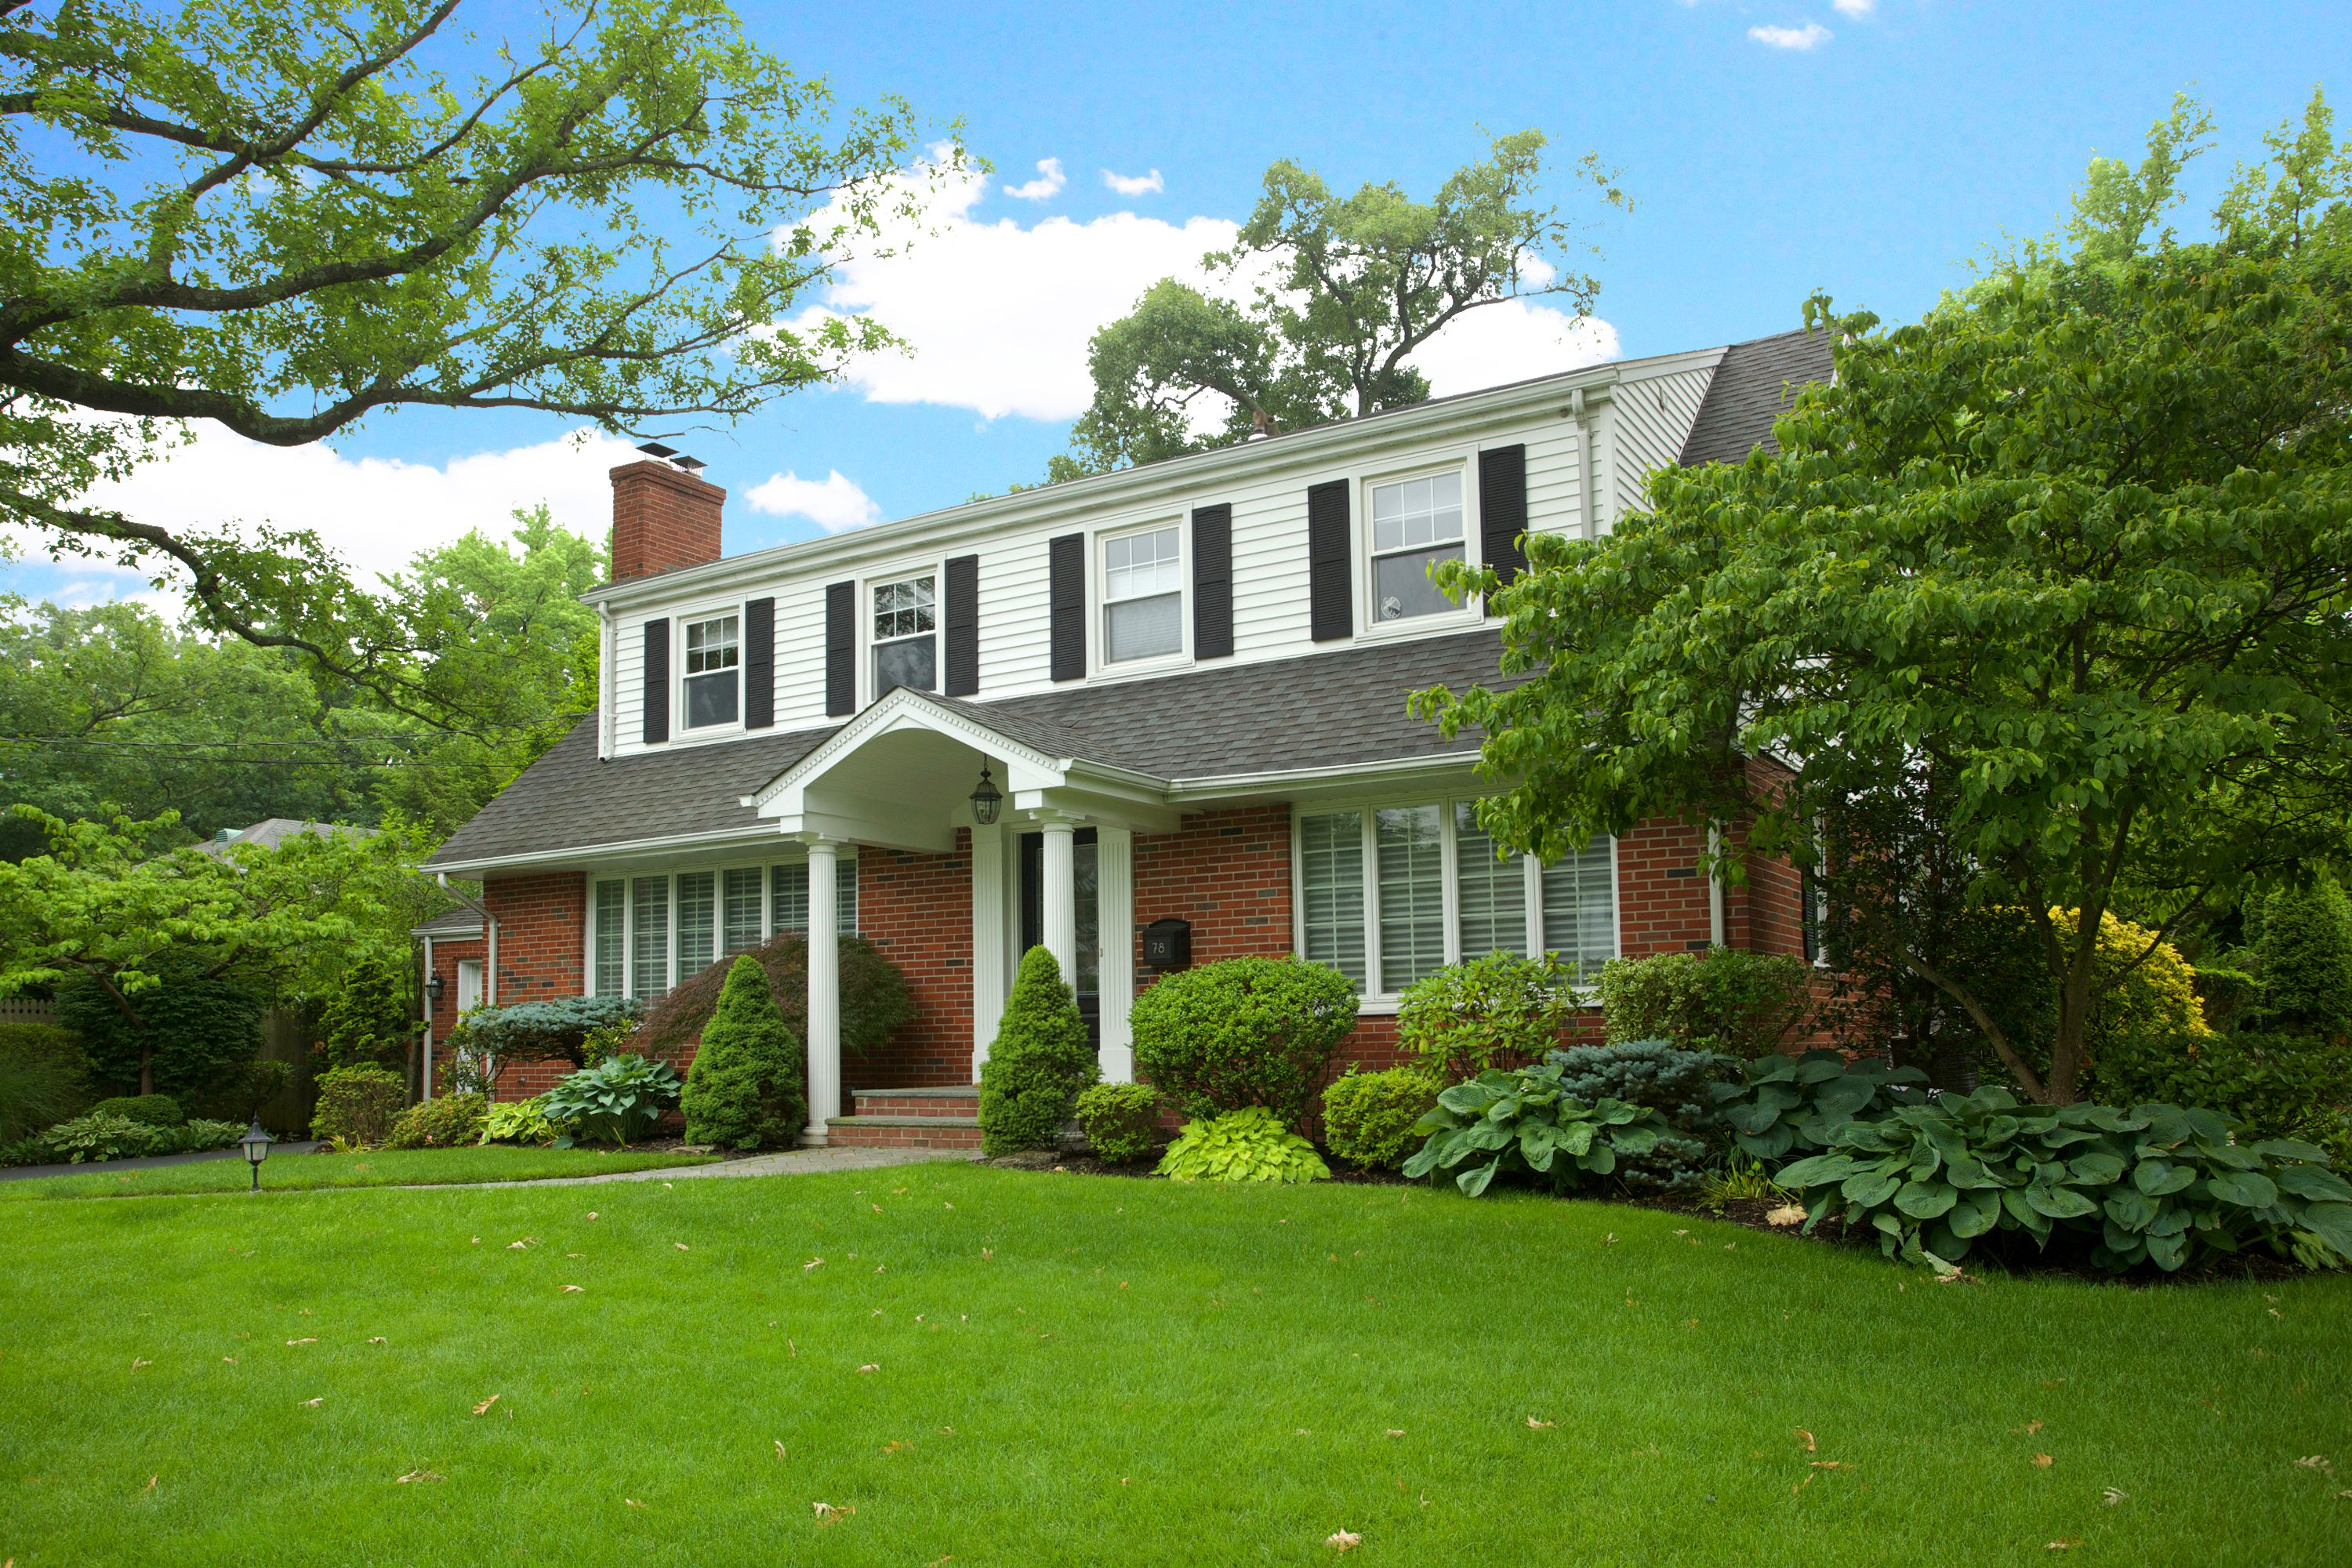 Single Family Home for Sale at East Hill Colonial 78 Briarcliff Rd Tenafly, New Jersey 07670 United States